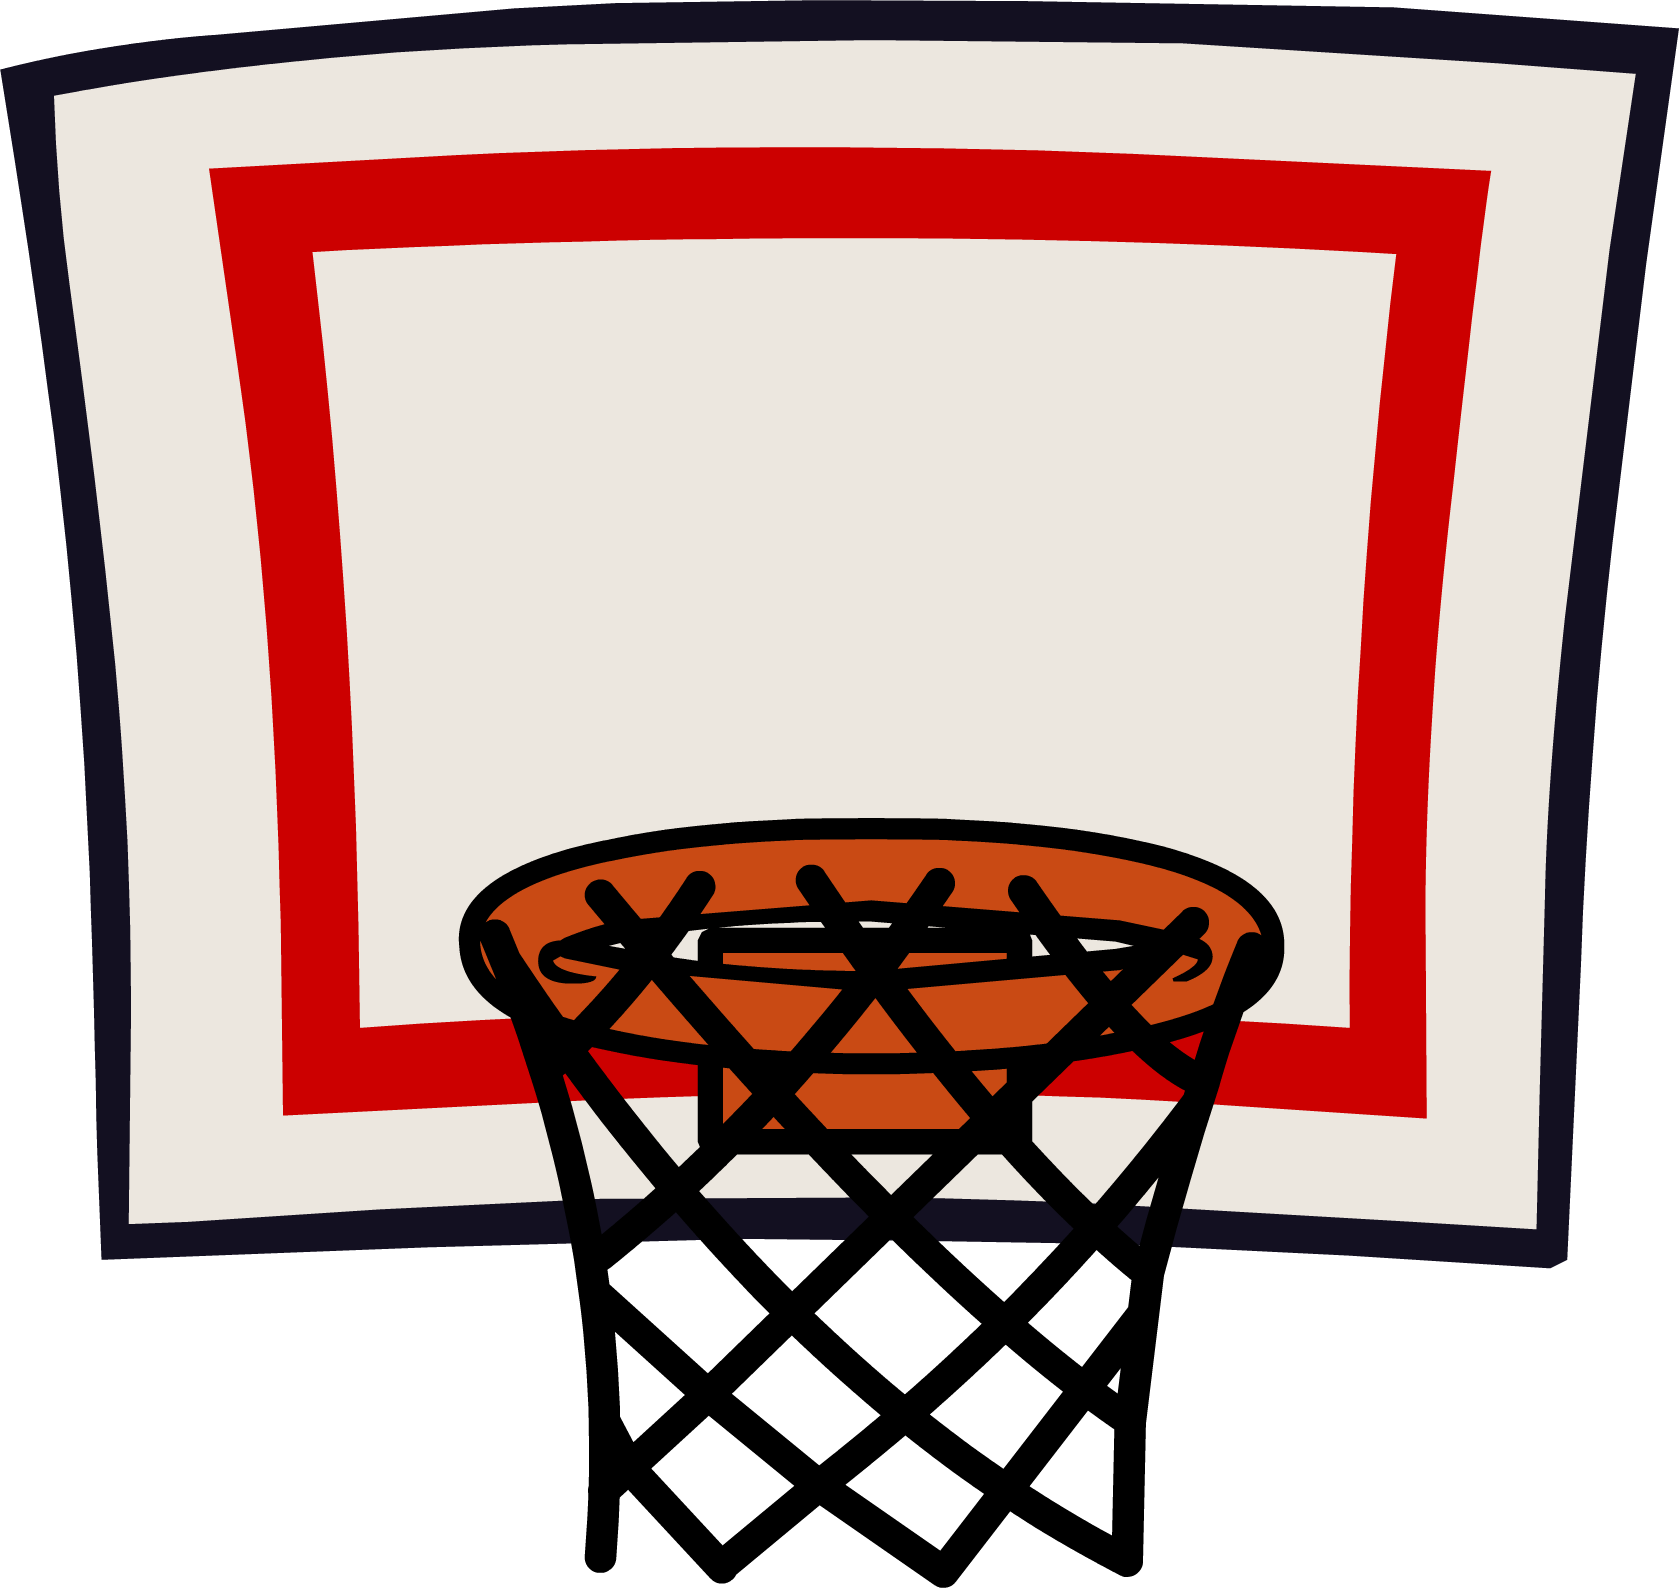 Animated basketball clipart svg library download Hoop basketball ring net clipart 2 - Clipartix svg library download